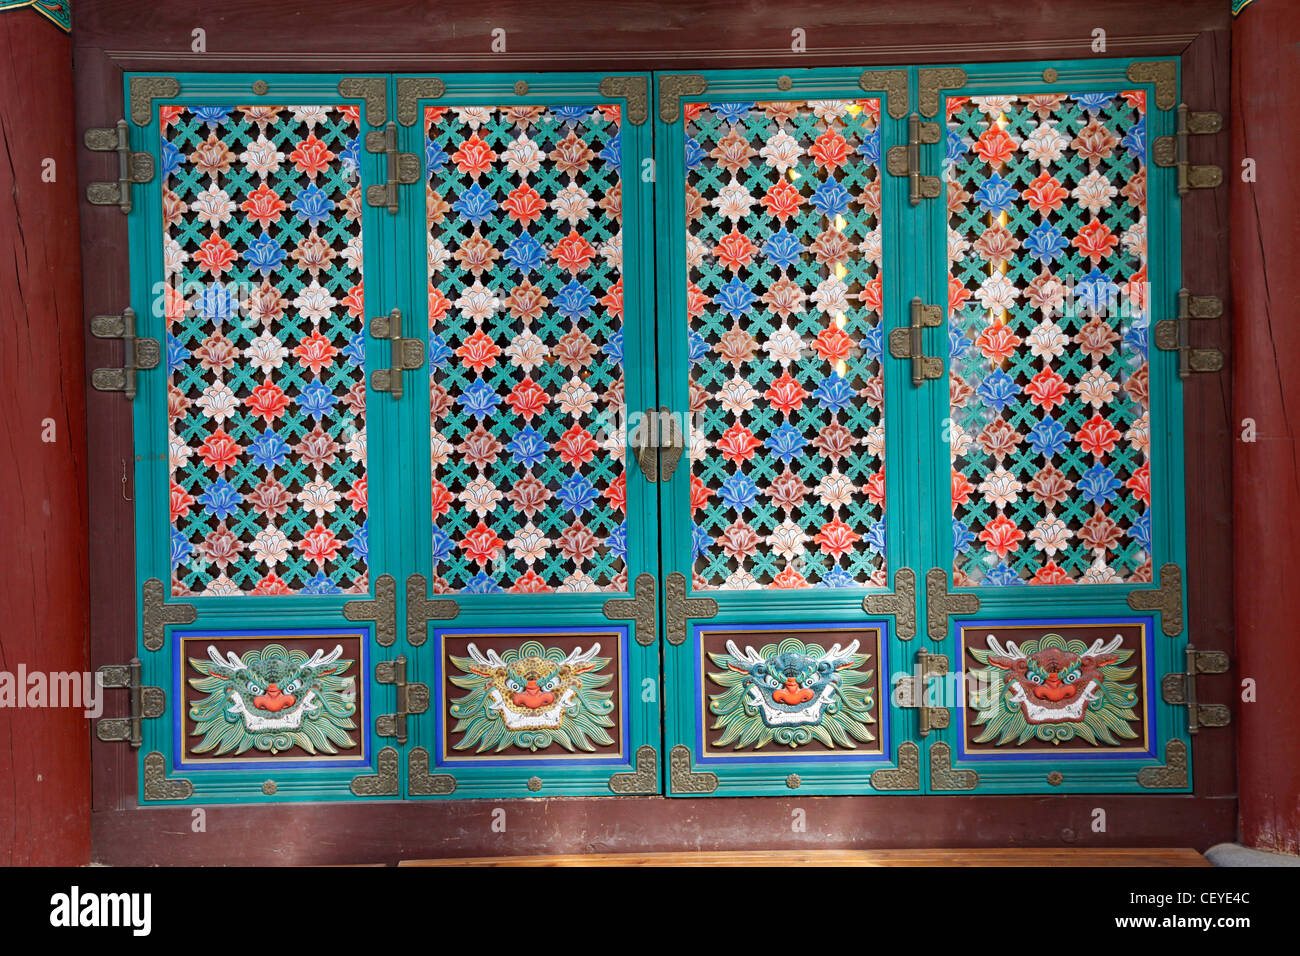 Colourful Floral And Flower Decorations On Screen Doors In Bongeunsa  Buddhist Temple In Seoul, South Korea